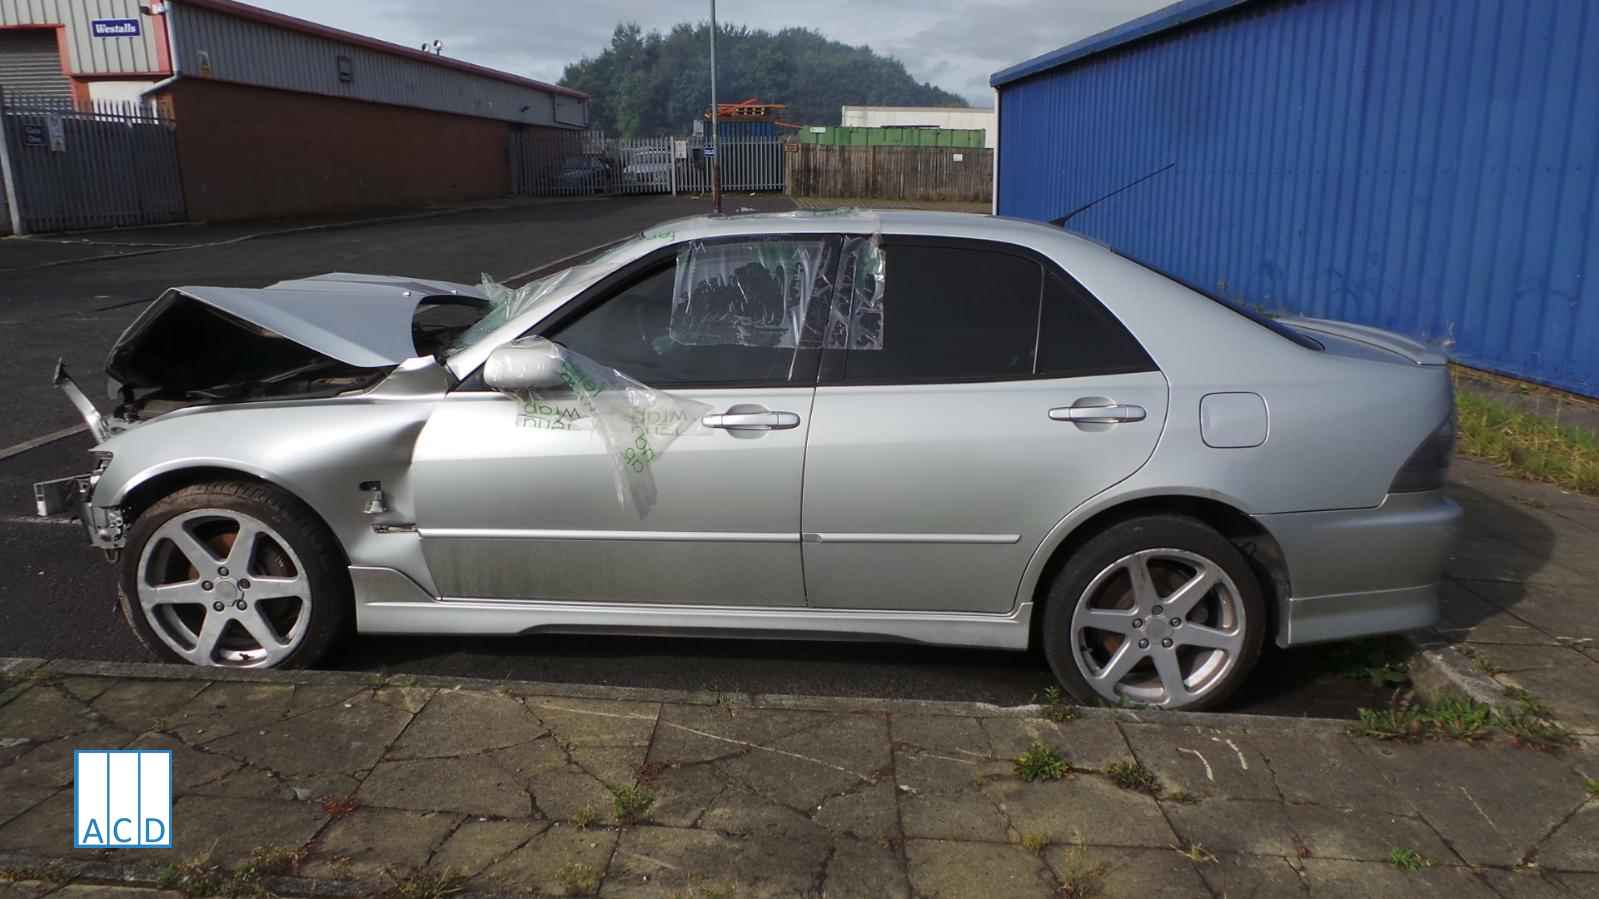 Lexus IS200SE 2.0L Petrol 6-Speed Manual 2005 #2224 01 front damage